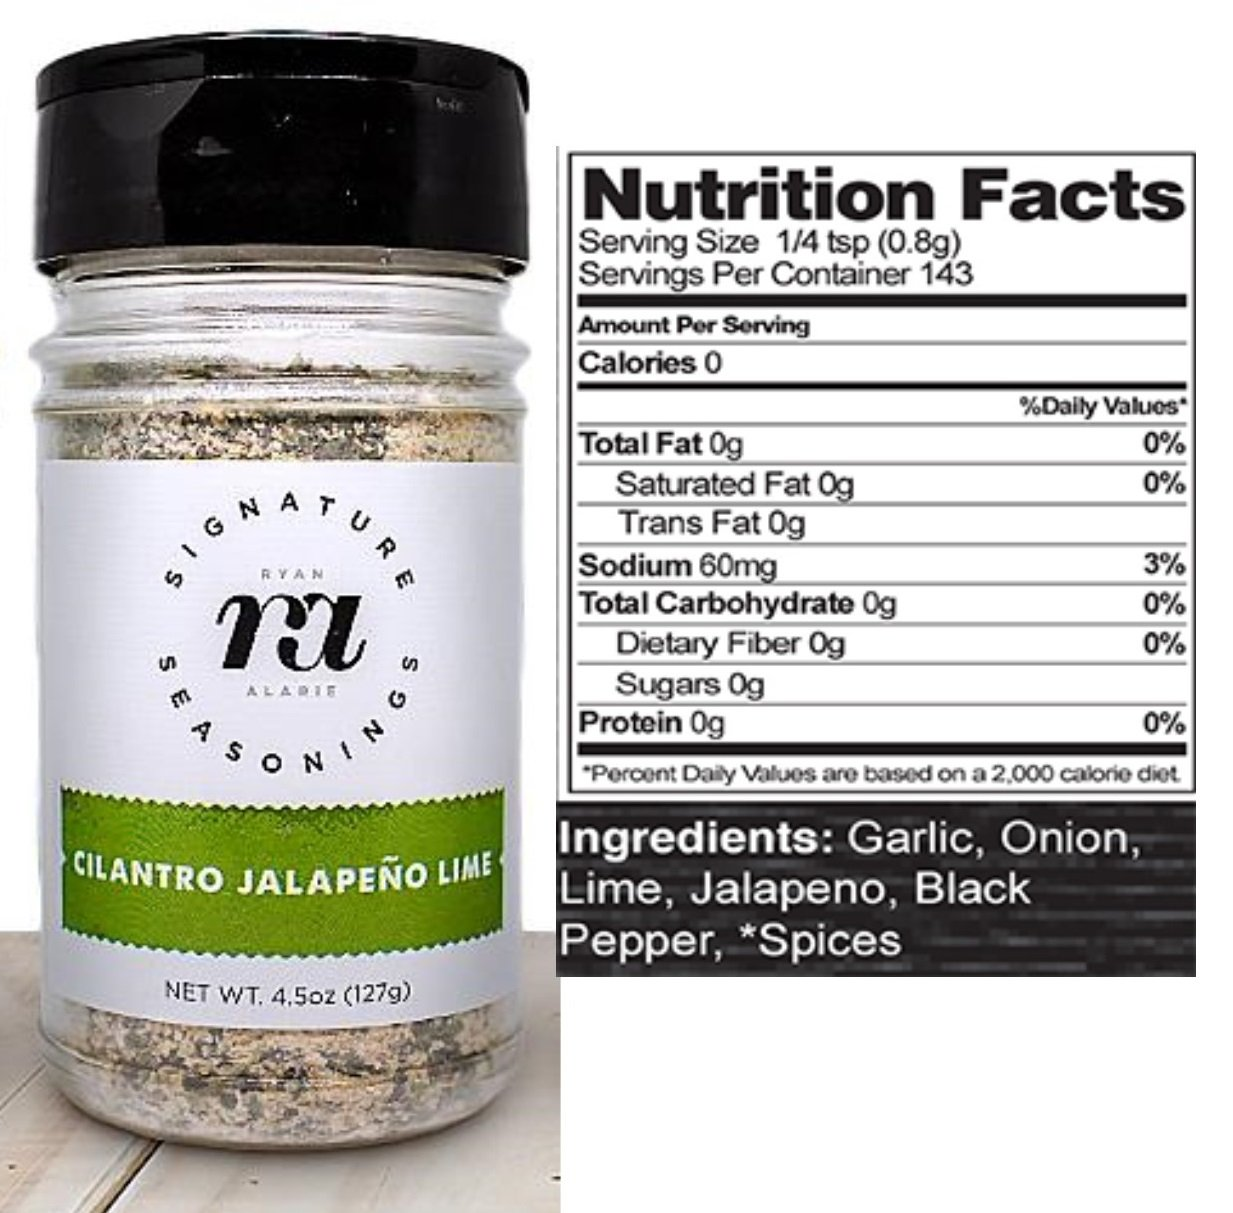 RA Seasonings Gluten Free, Keto Friendly, All Natural Seasonings Set of 3 - All Purpose, Zesty Garlic, Cilantro Jalapeno Lime Spice Blends – Low Sodium, Non GMO Large 4.5 oz Shakers - by